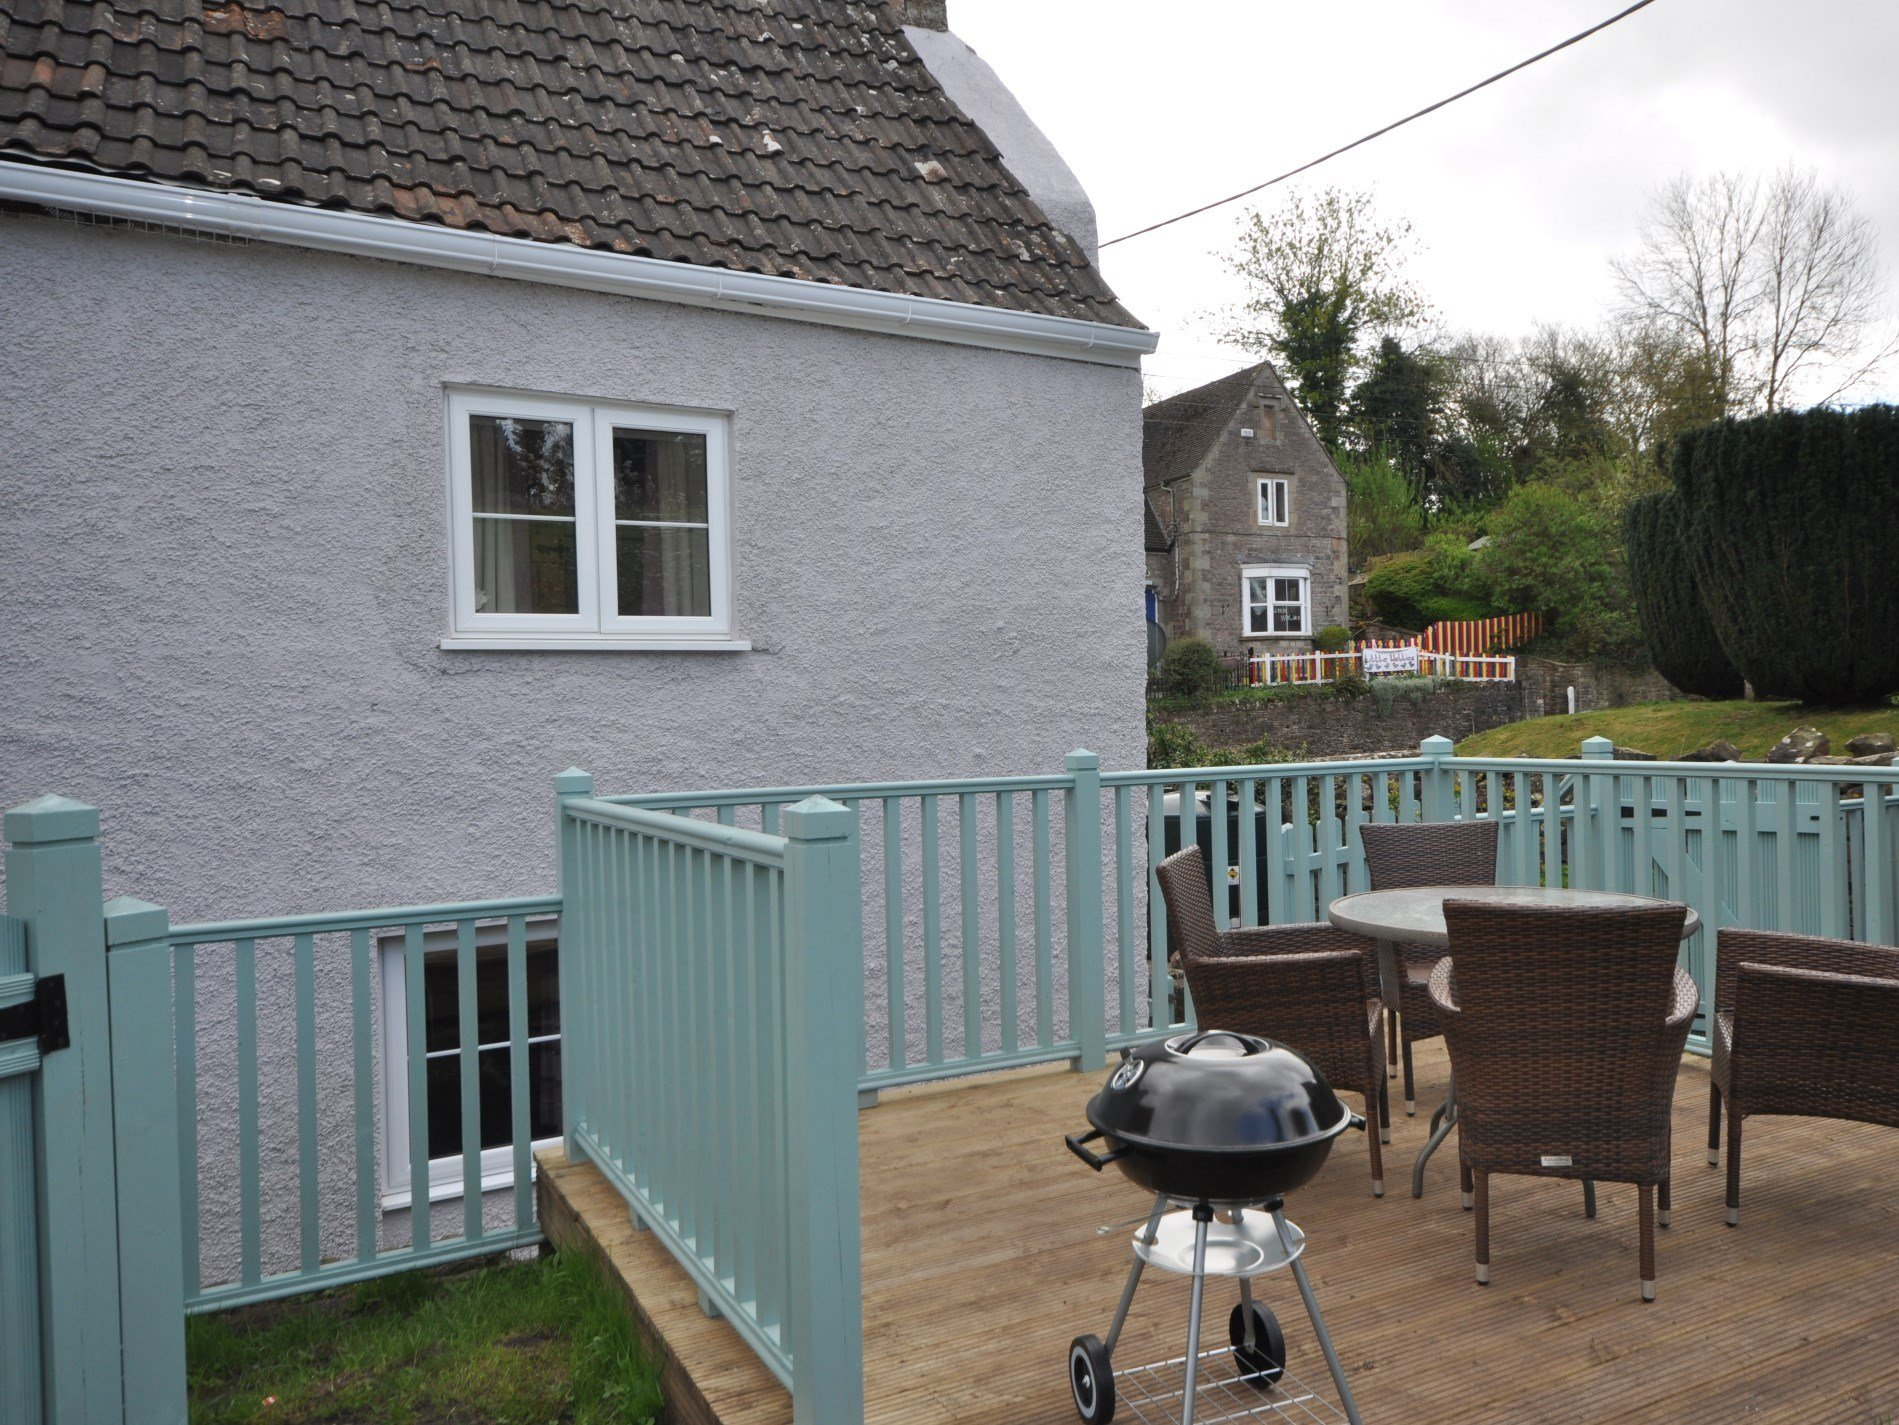 Excellent decking area to enjoy a summers evening